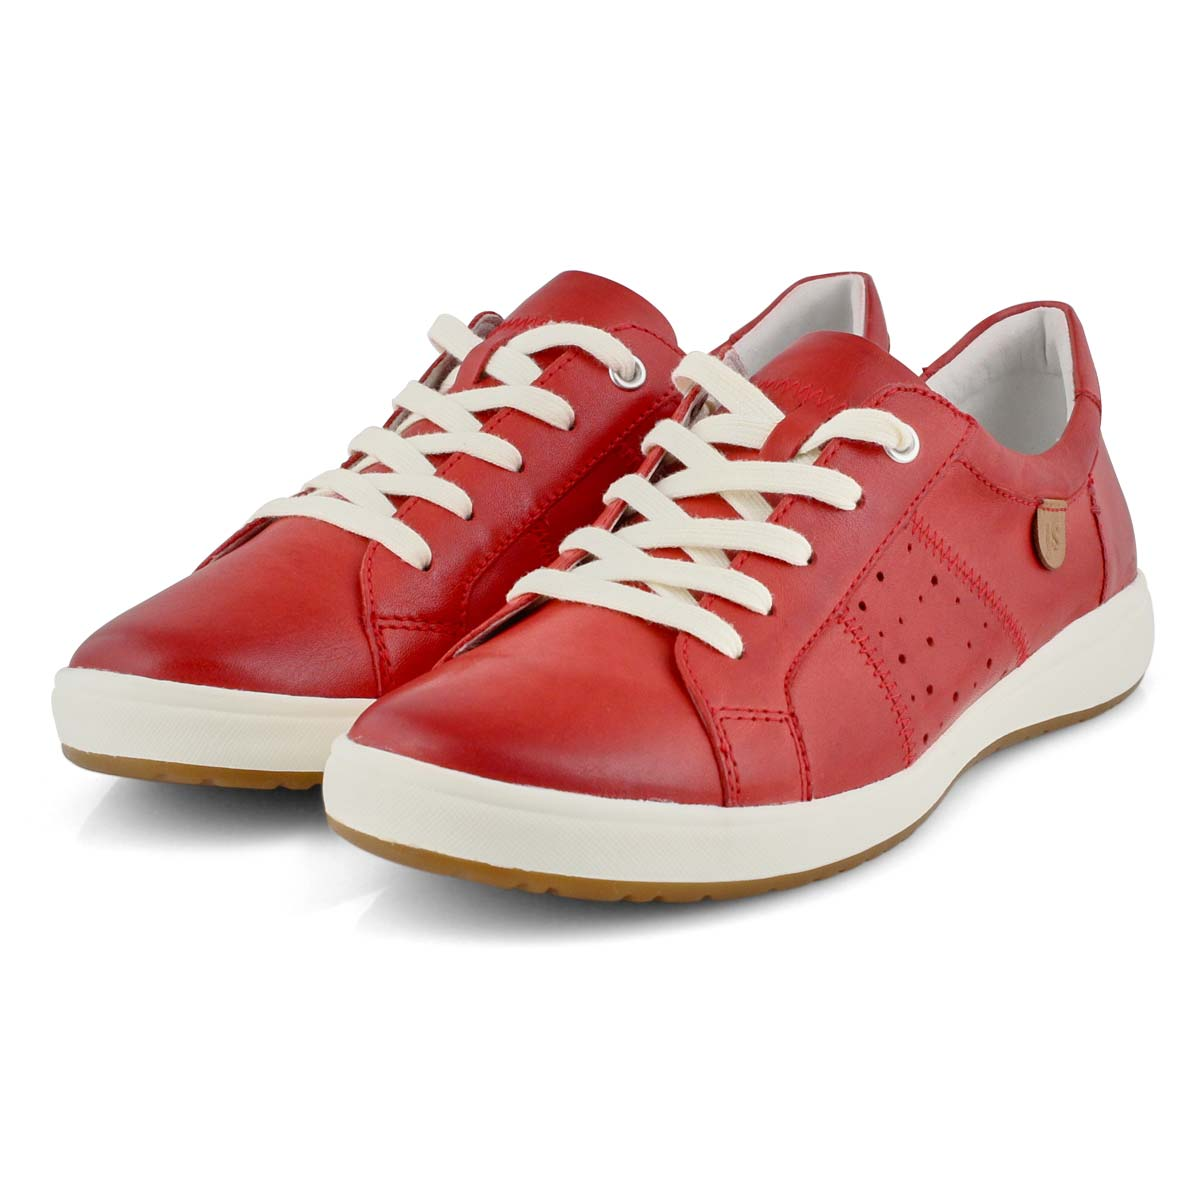 Lds Caren 01 red lace up sneaker